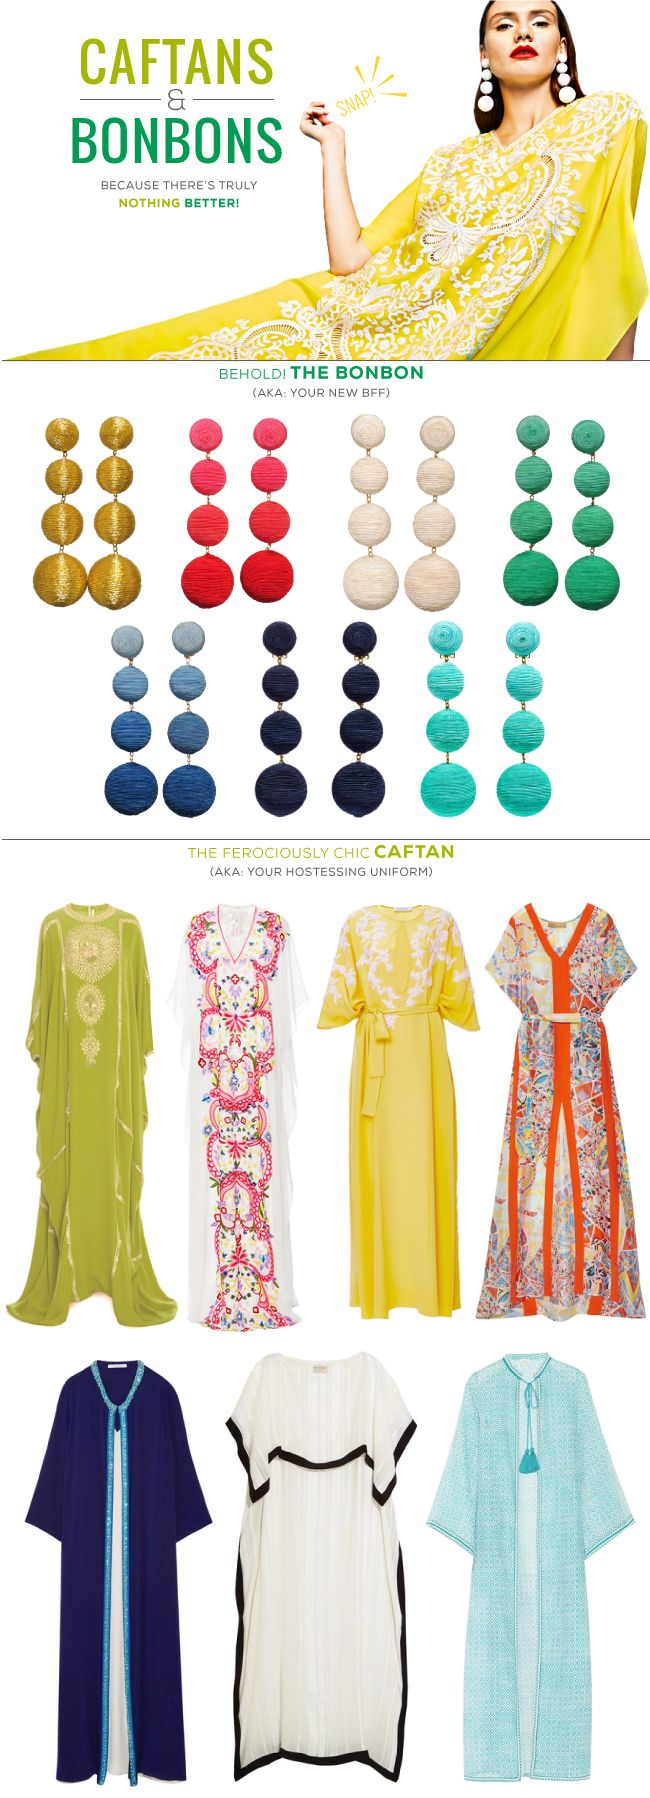 Les Bonbon Earrings by : Rebecca De Ravenel Gold / Raspberry / Coconut / Mint / Blueberry / Black Currant / Turquoise Caftan Collection : Naeem Khan, Lime Starburst Caftan/ Naeem Khan, Multicolor Embroidered Caftan/ Prabal Gurung Embroidered Lemon Caftan/ Emilio Pucci Printed hammered s